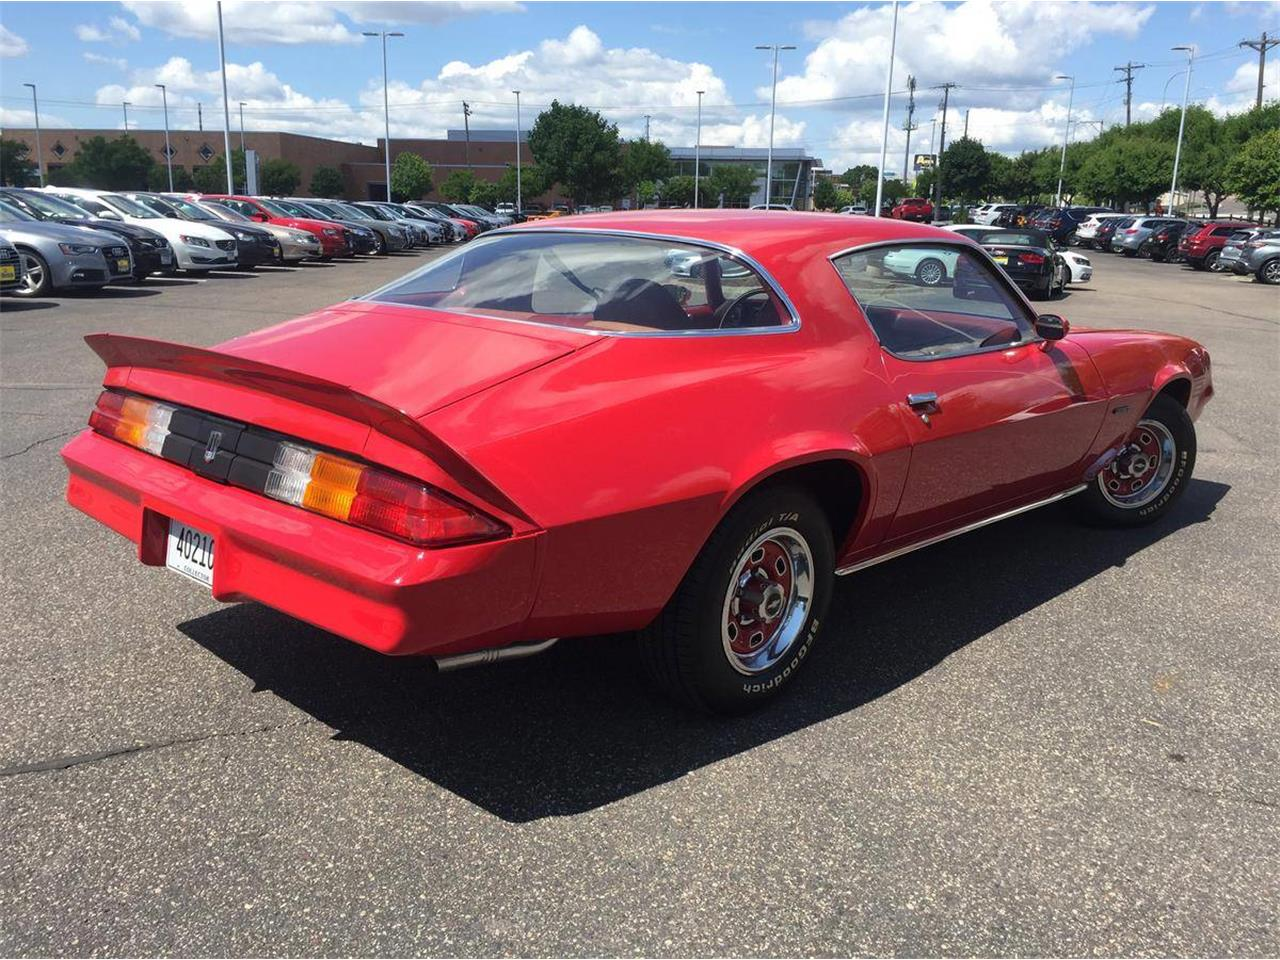 Large Picture of 1978 Chevrolet Camaro located in Roseville Minnesota Auction Vehicle - QBVU